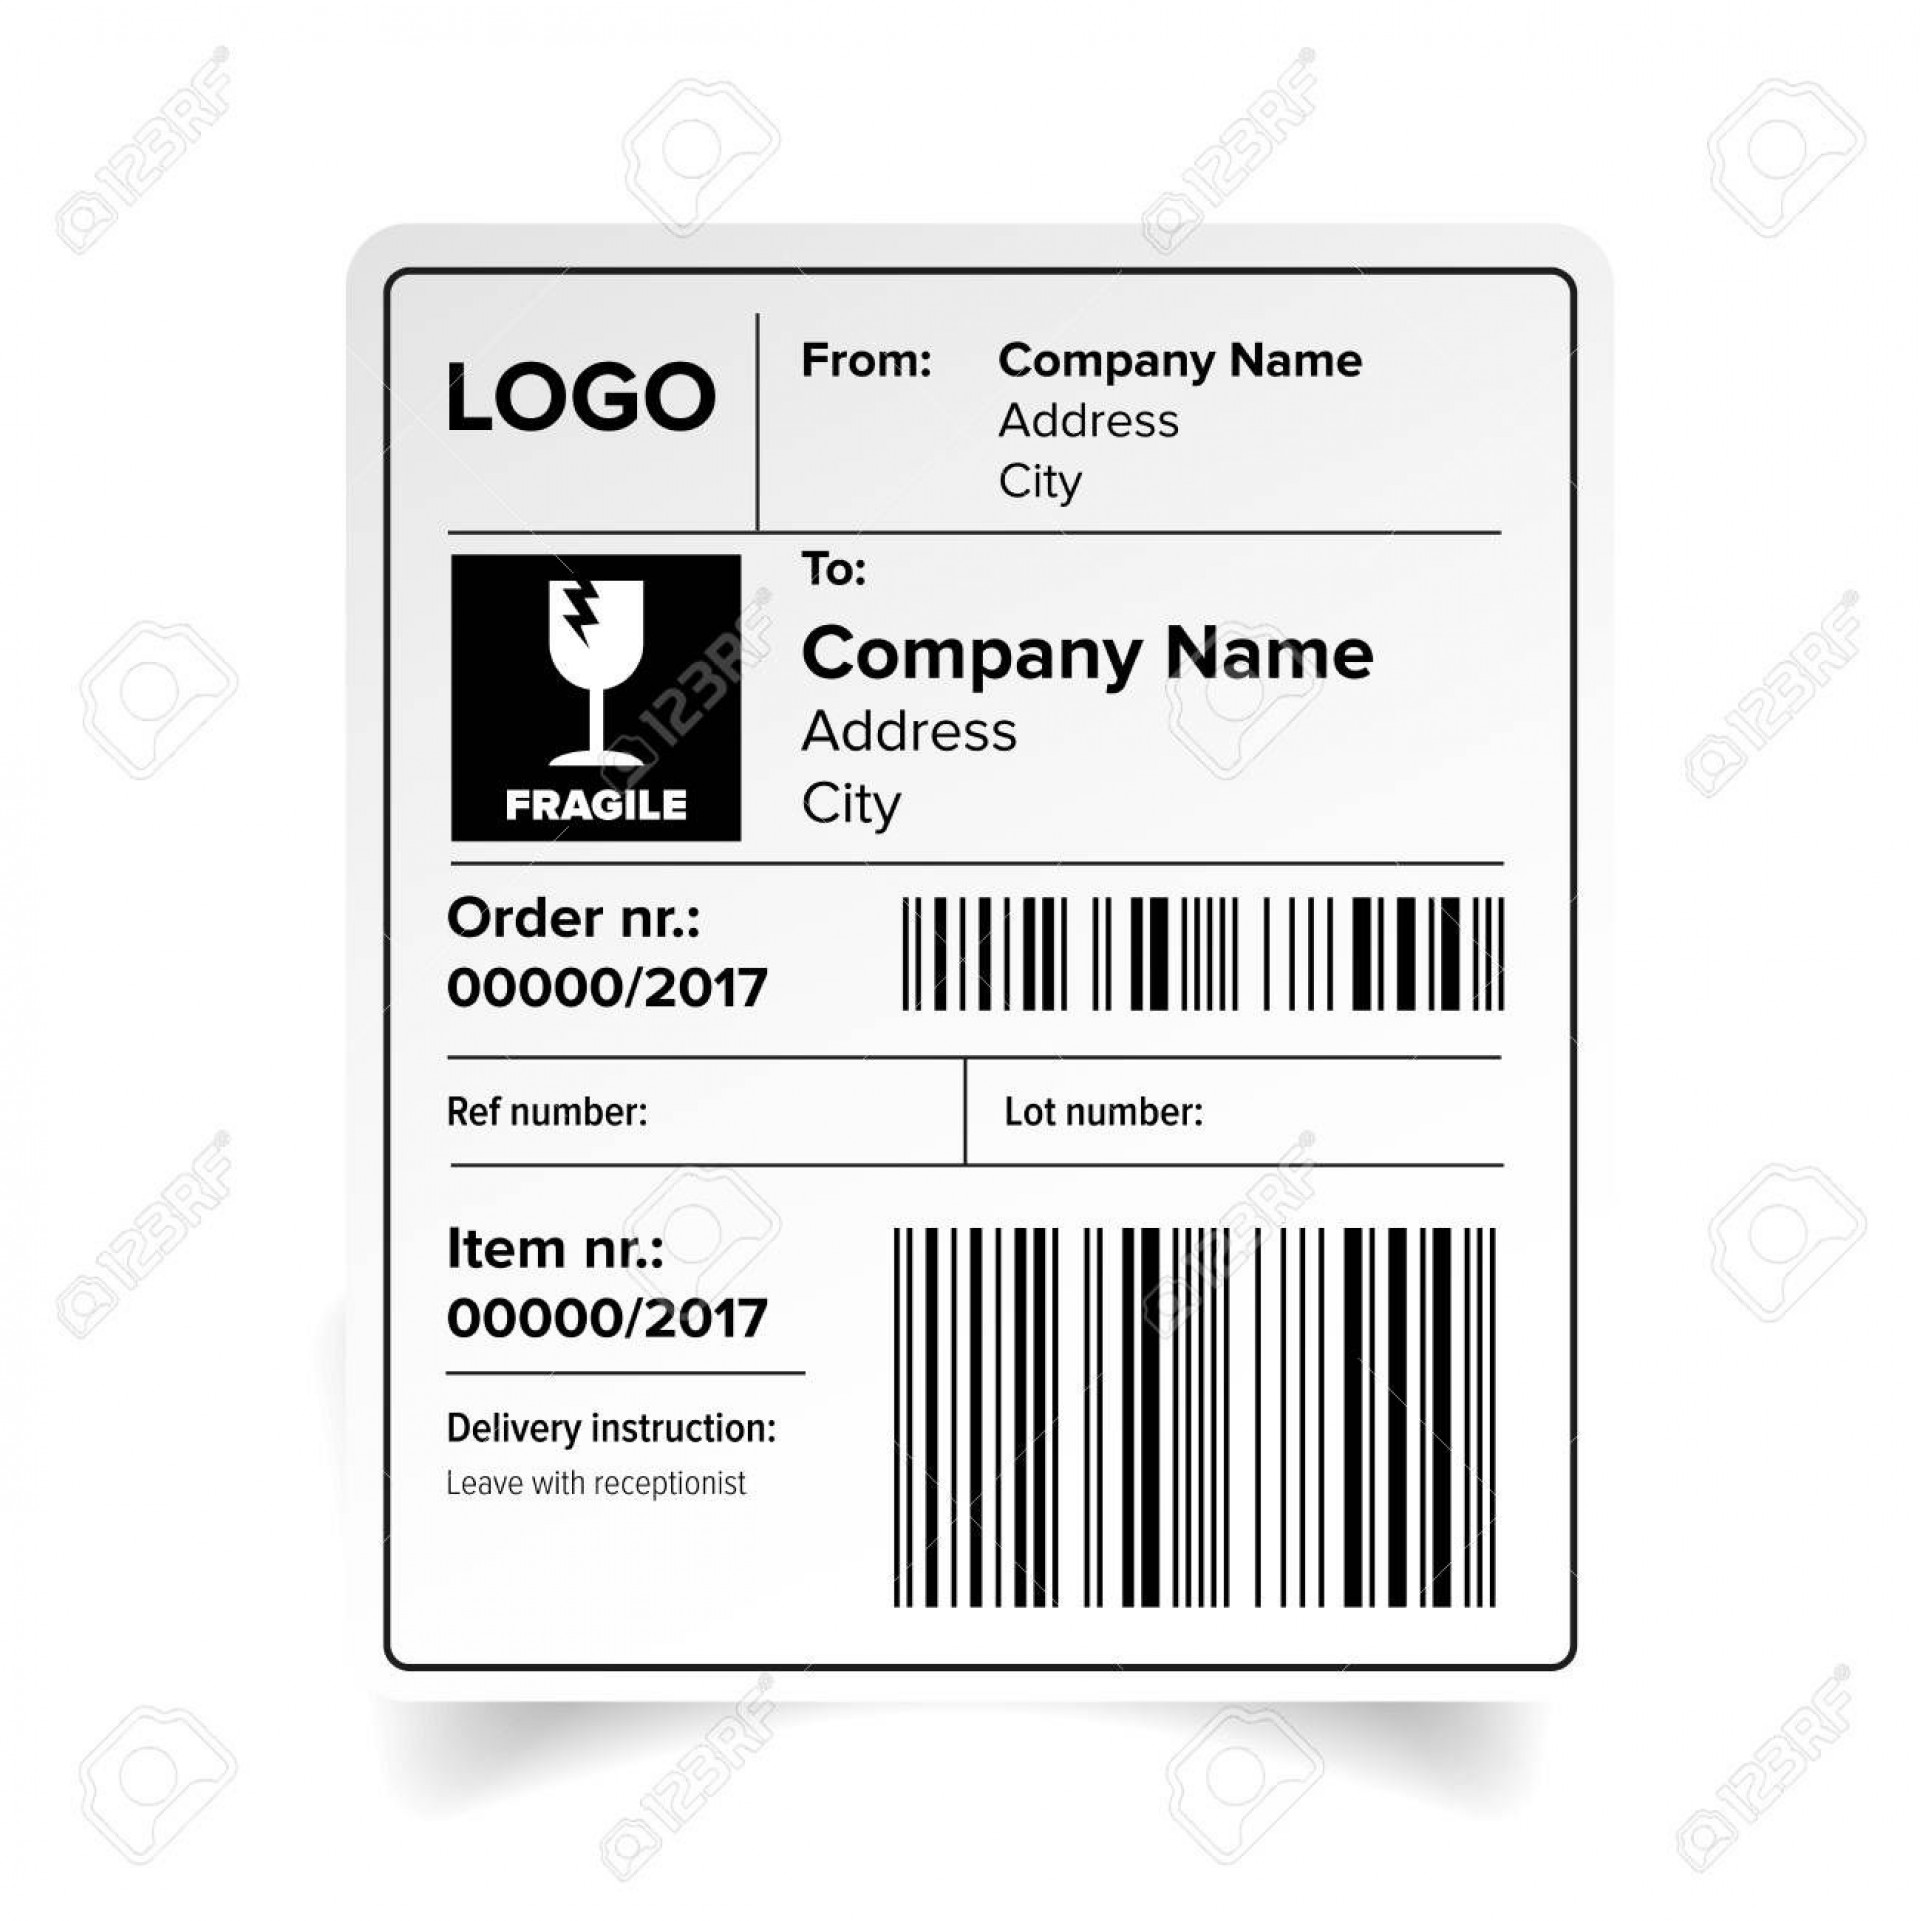 004 Staggering Free Shipping Label Template Photo  Format Word For Mac1920